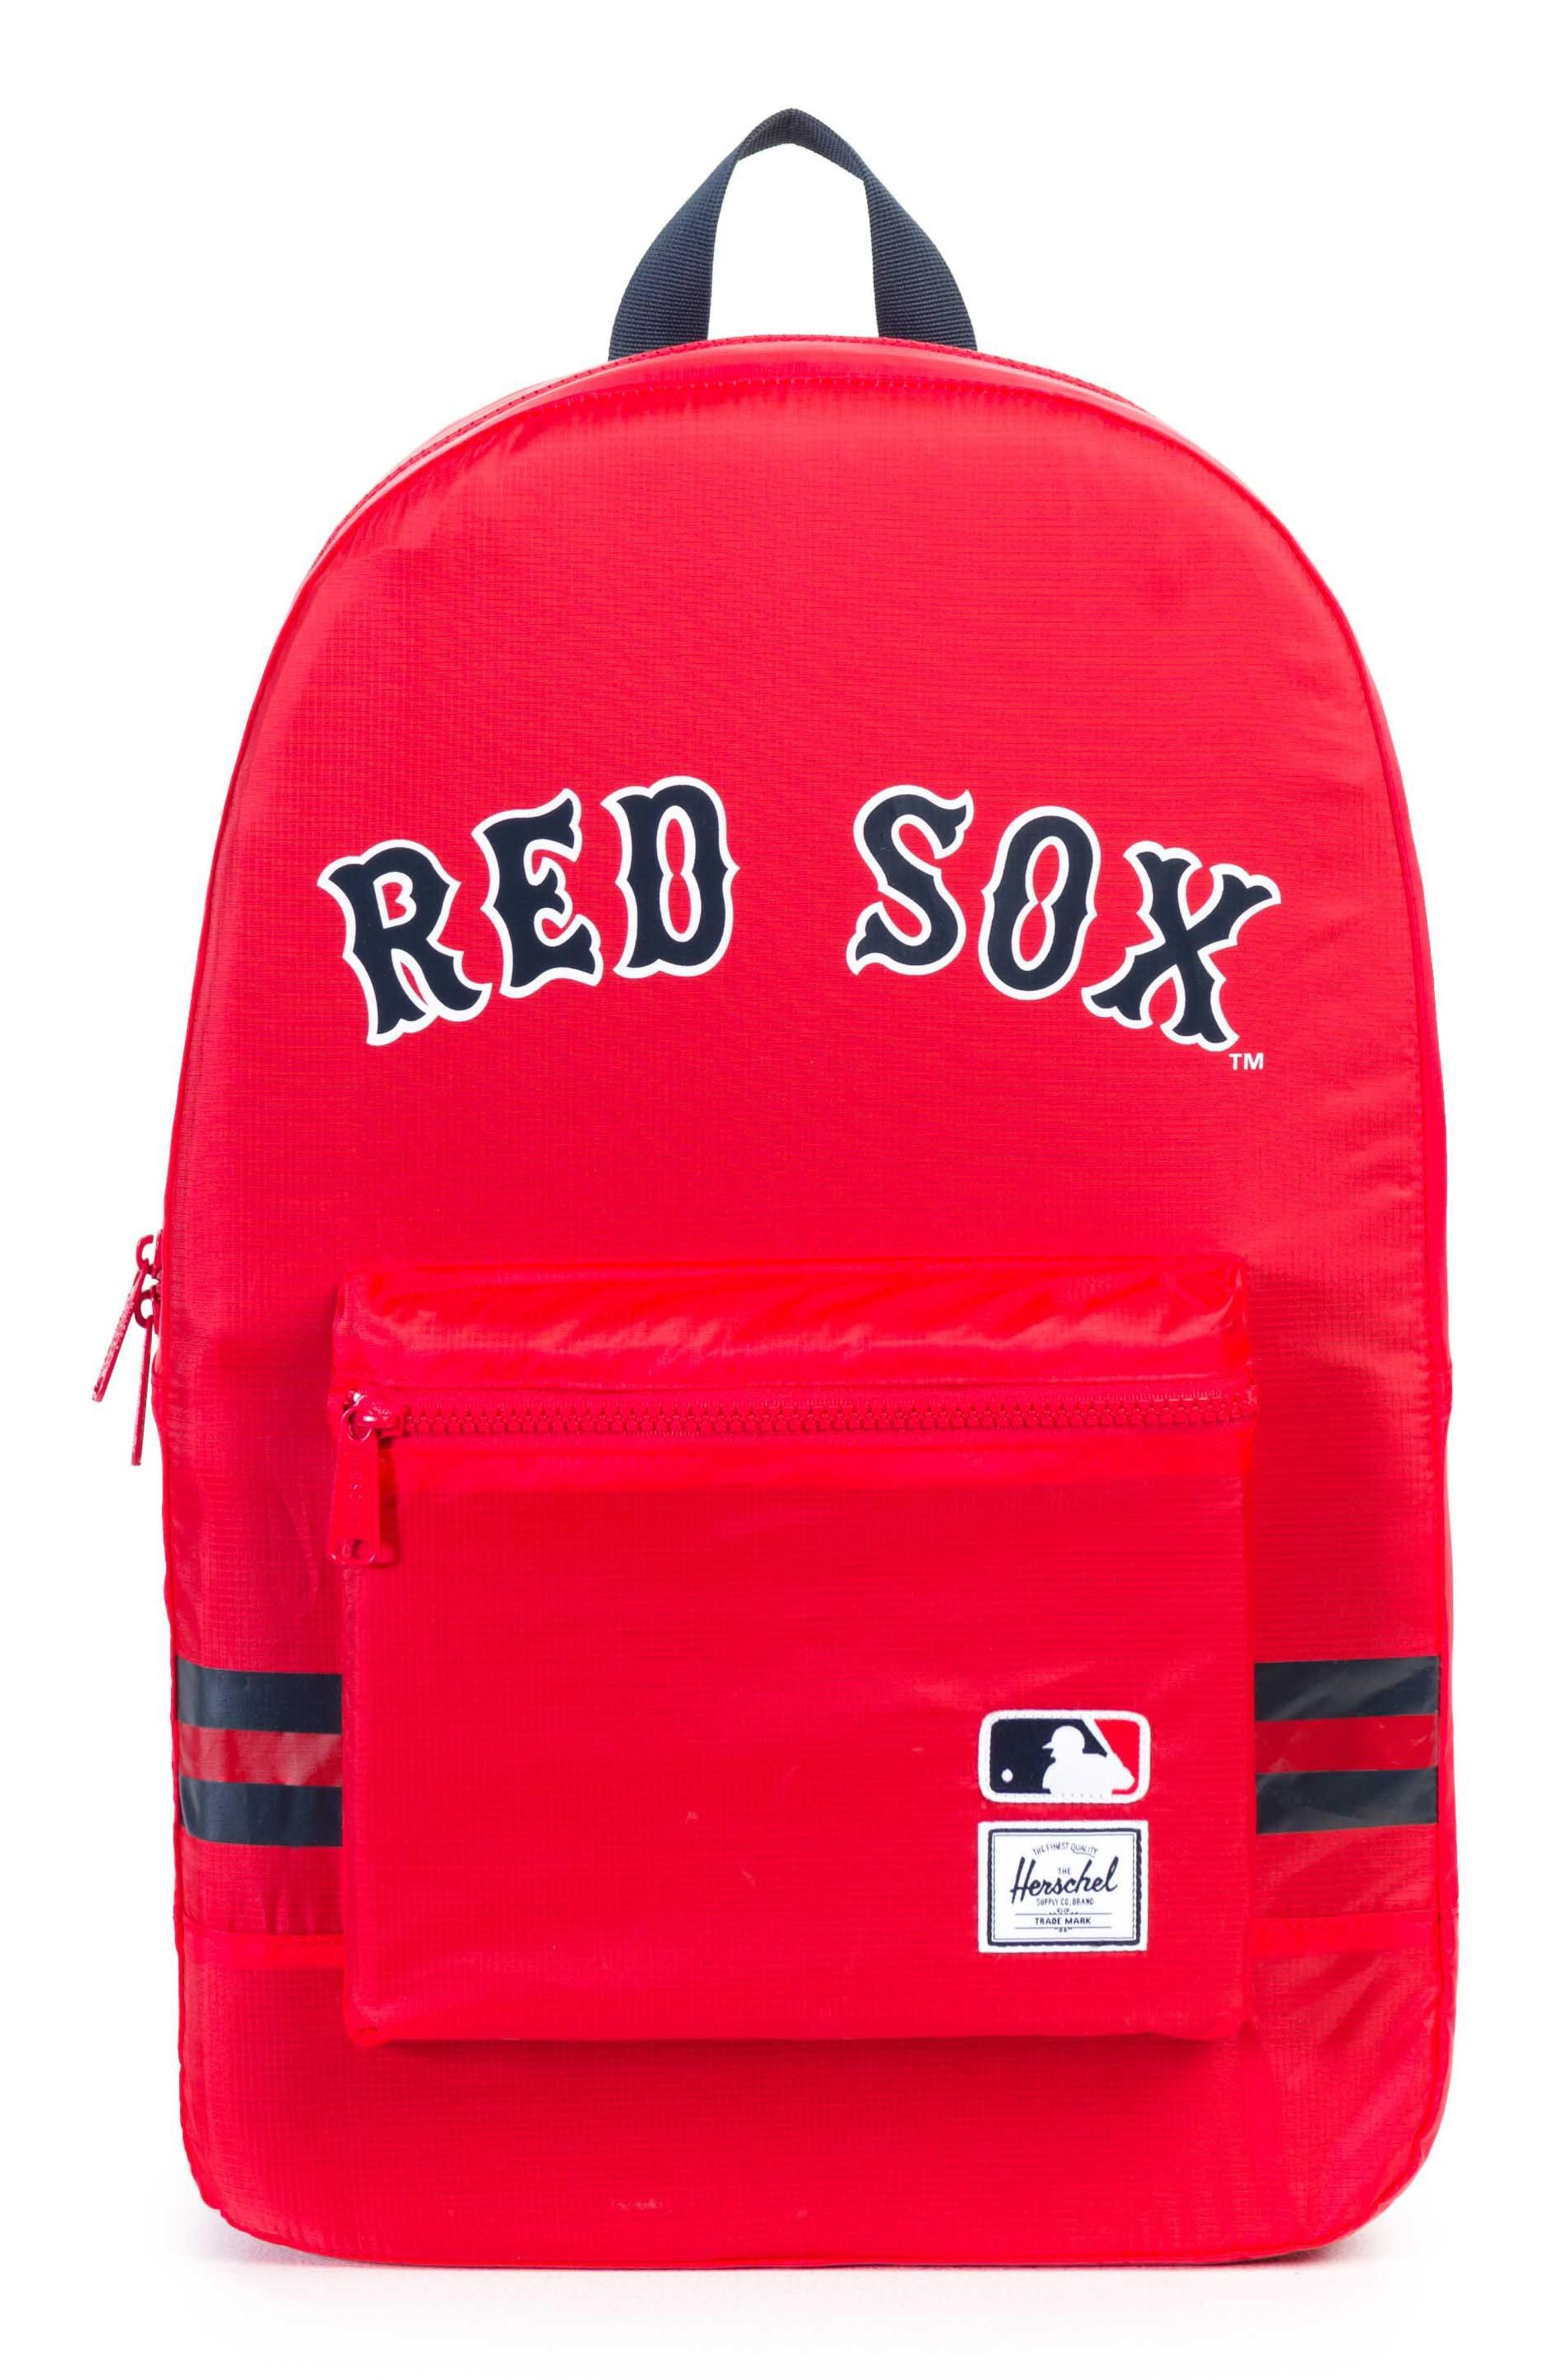 06e052307c9 An ultra-light ripstop backpack printed with your favorite American League  team logos packs down into its own interior pocket when not in use.